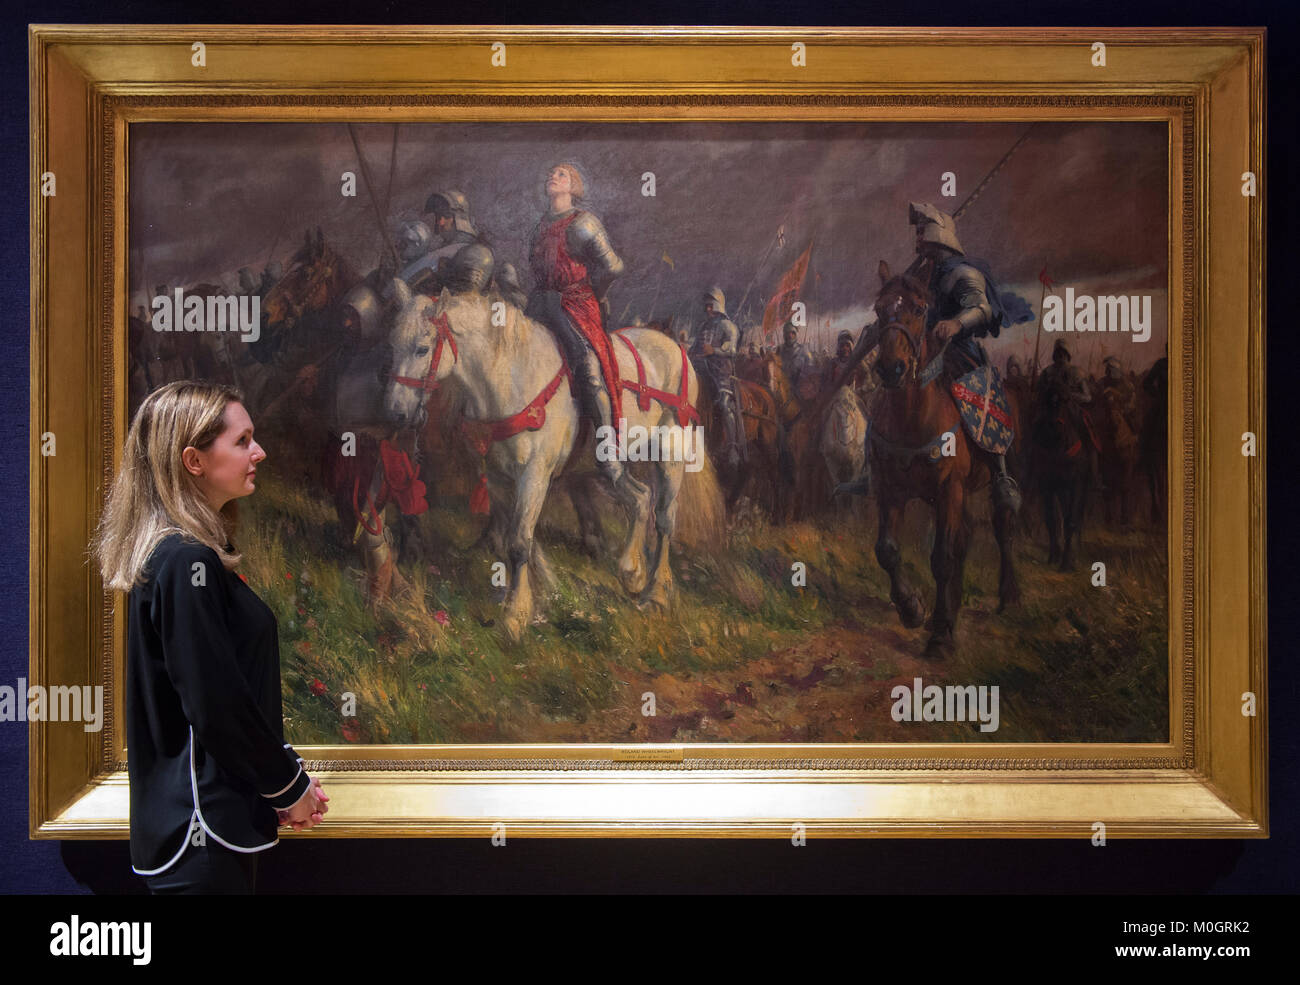 "an analysis of the painting joan of arc by jules bastien lepage in 19th century Joan of arc essay in the metropolitan museum of art in new york city the painting ""joan of arc"" by jules bastien-lepage hangs in the b gerald cantor sculpture gallery."